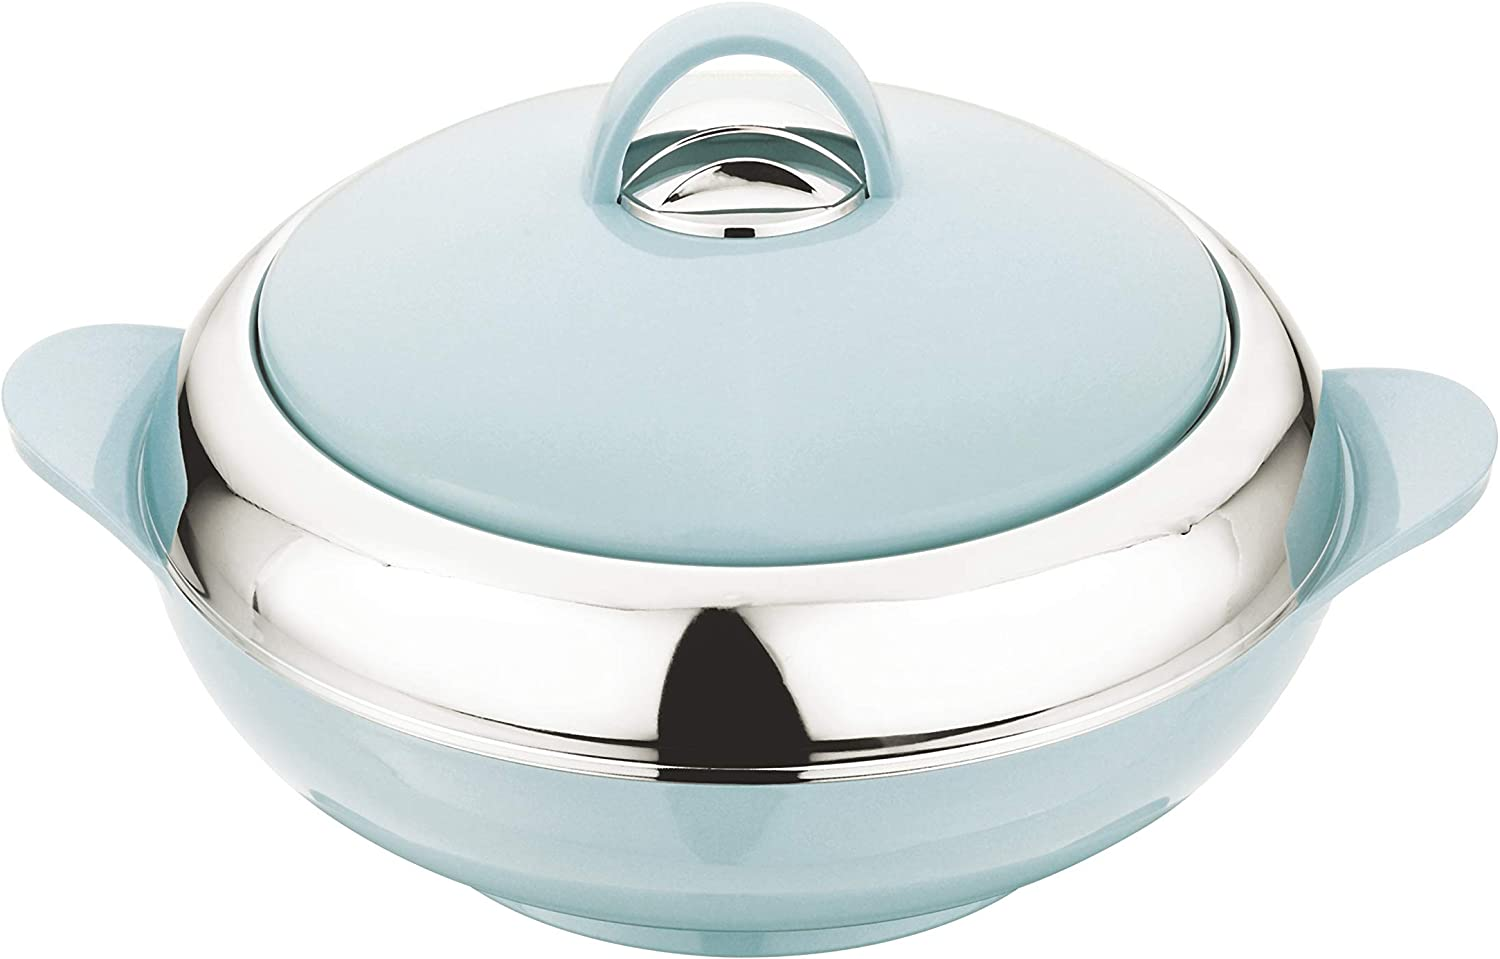 Tmvel Crescent Insulated Casserole Hot Pot - Insulated Serving Bowl With Lid - Food Warmer (2500ml 2.5L, BLUISH GREY)